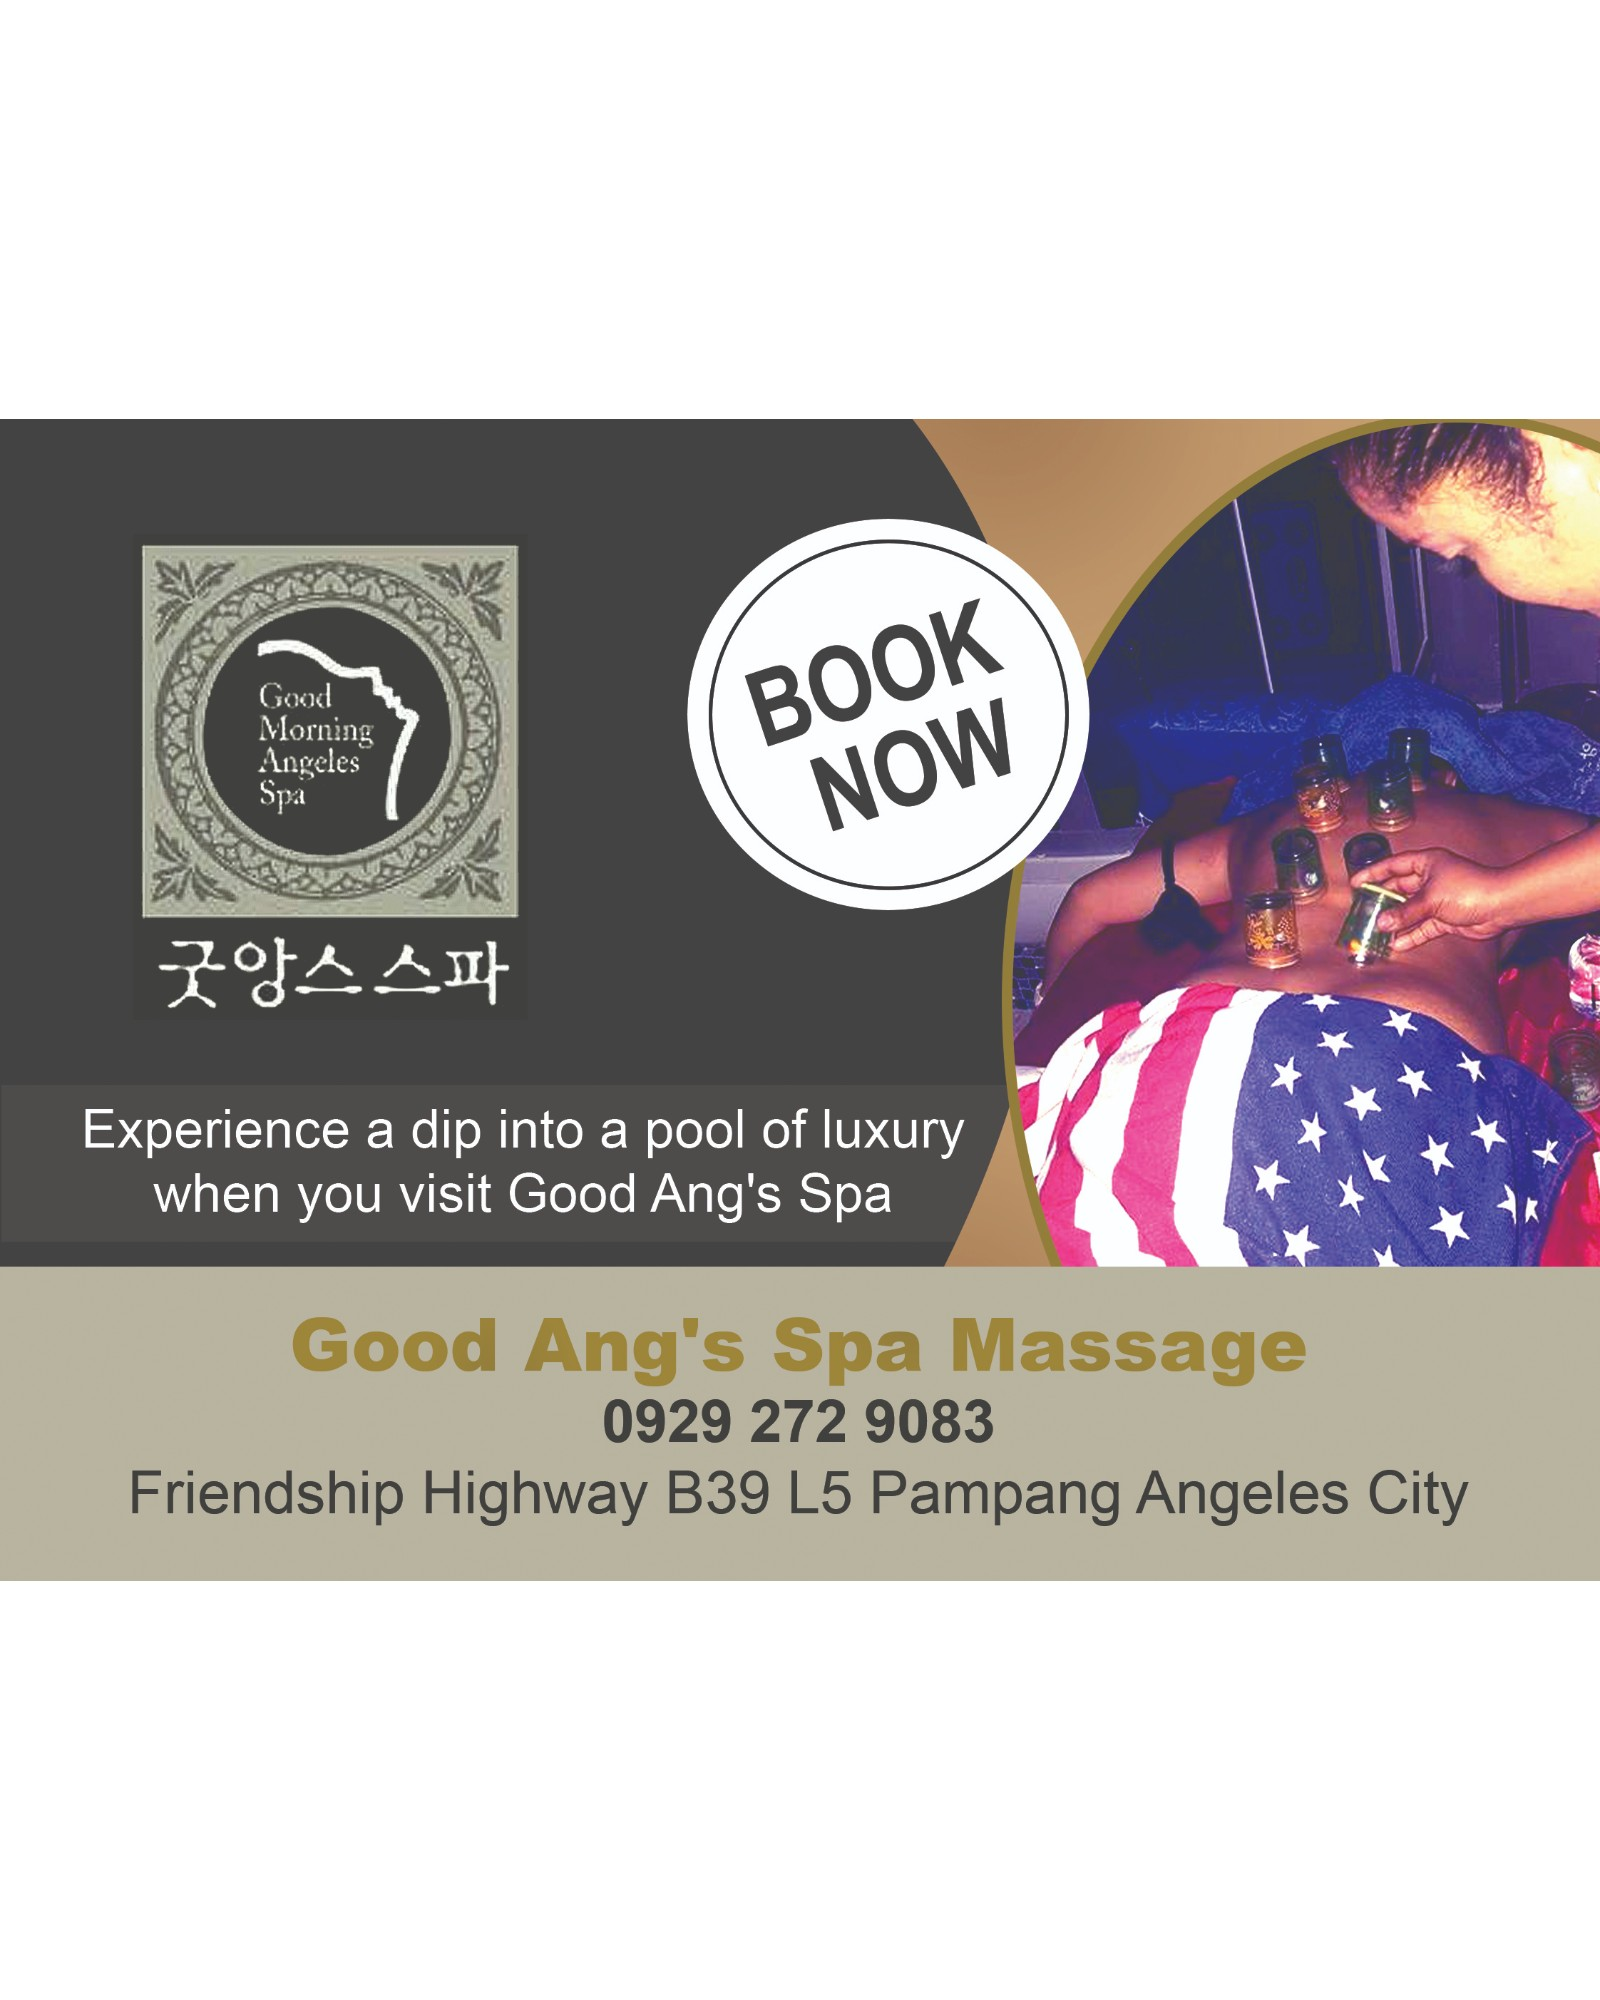 Good Ang's Spa